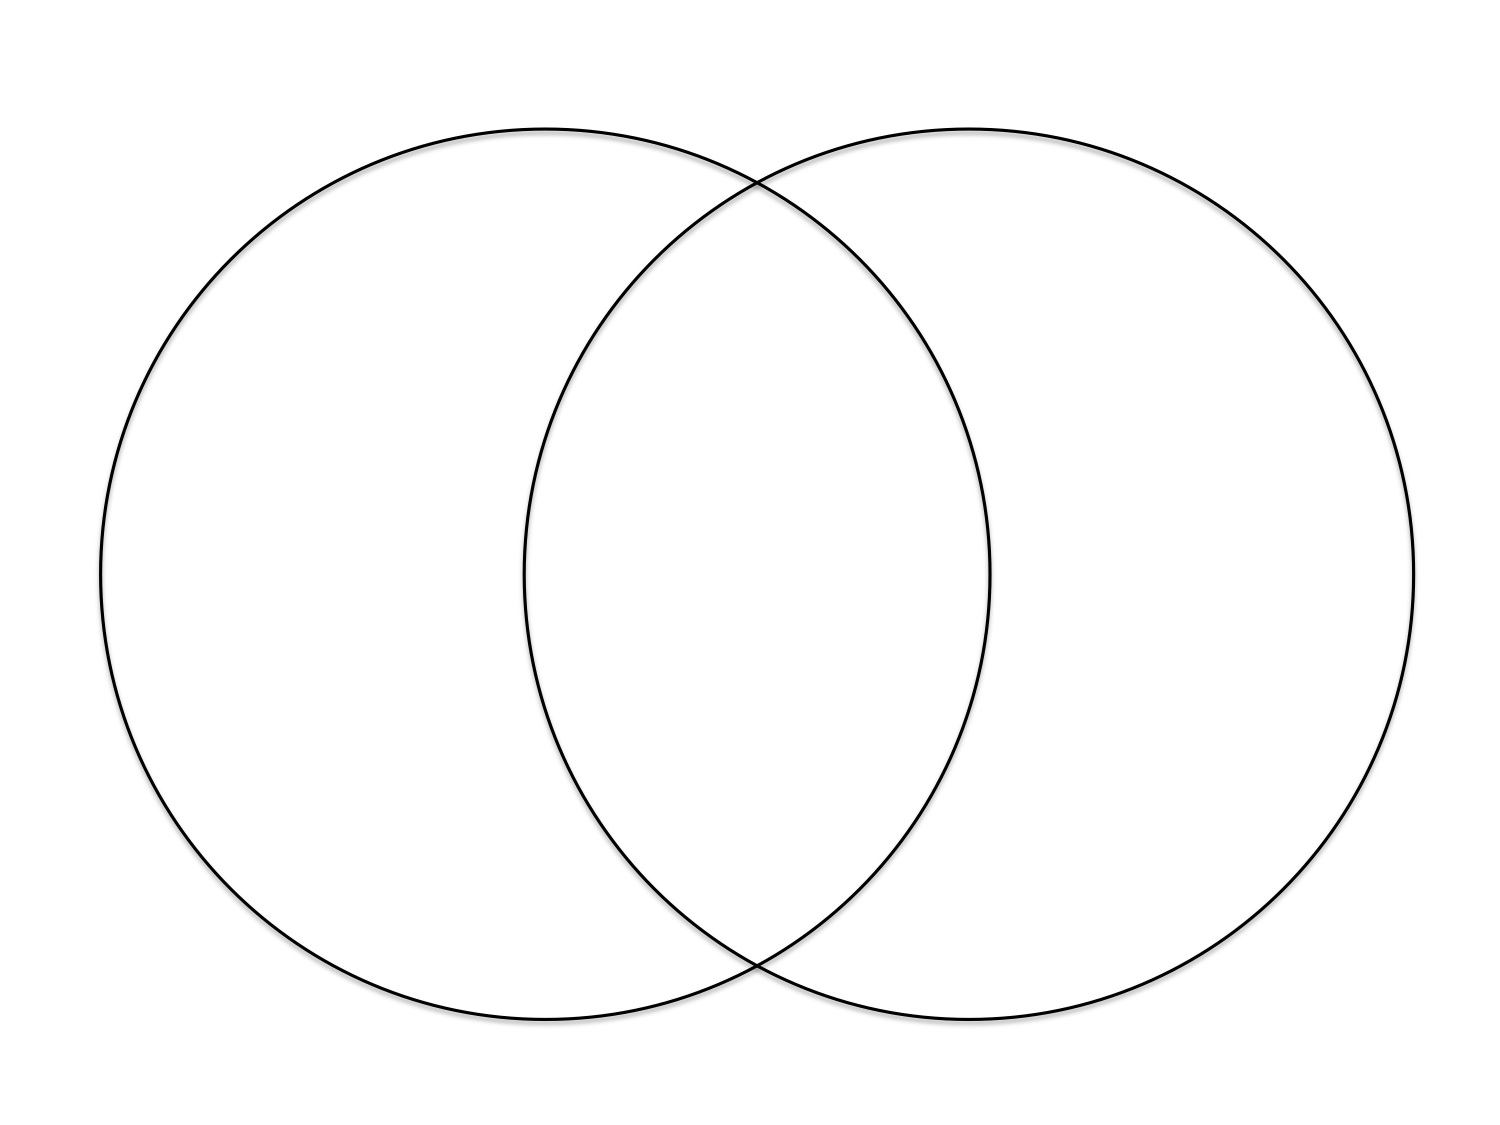 Venn Diagram House Senate Gallery How To Guide And Refrence